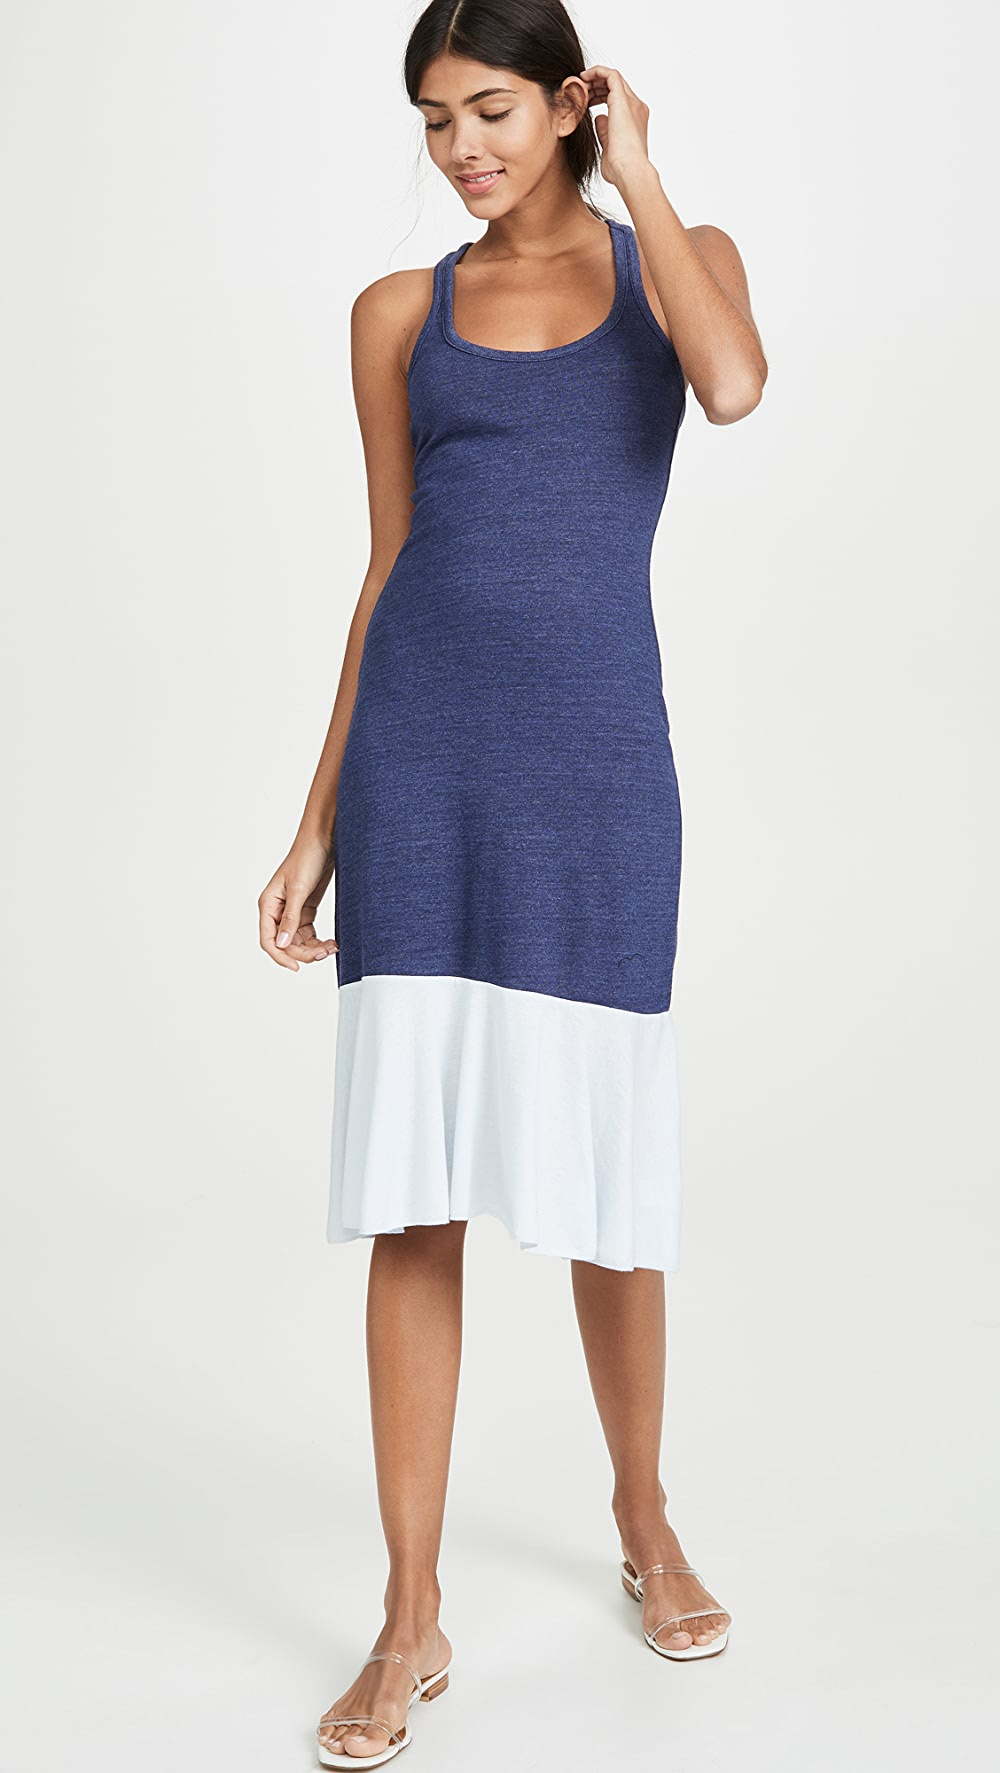 Practical Chaser - Racerback Midi Dress With Peplum Hem Good For Antipyretic And Throat Soother